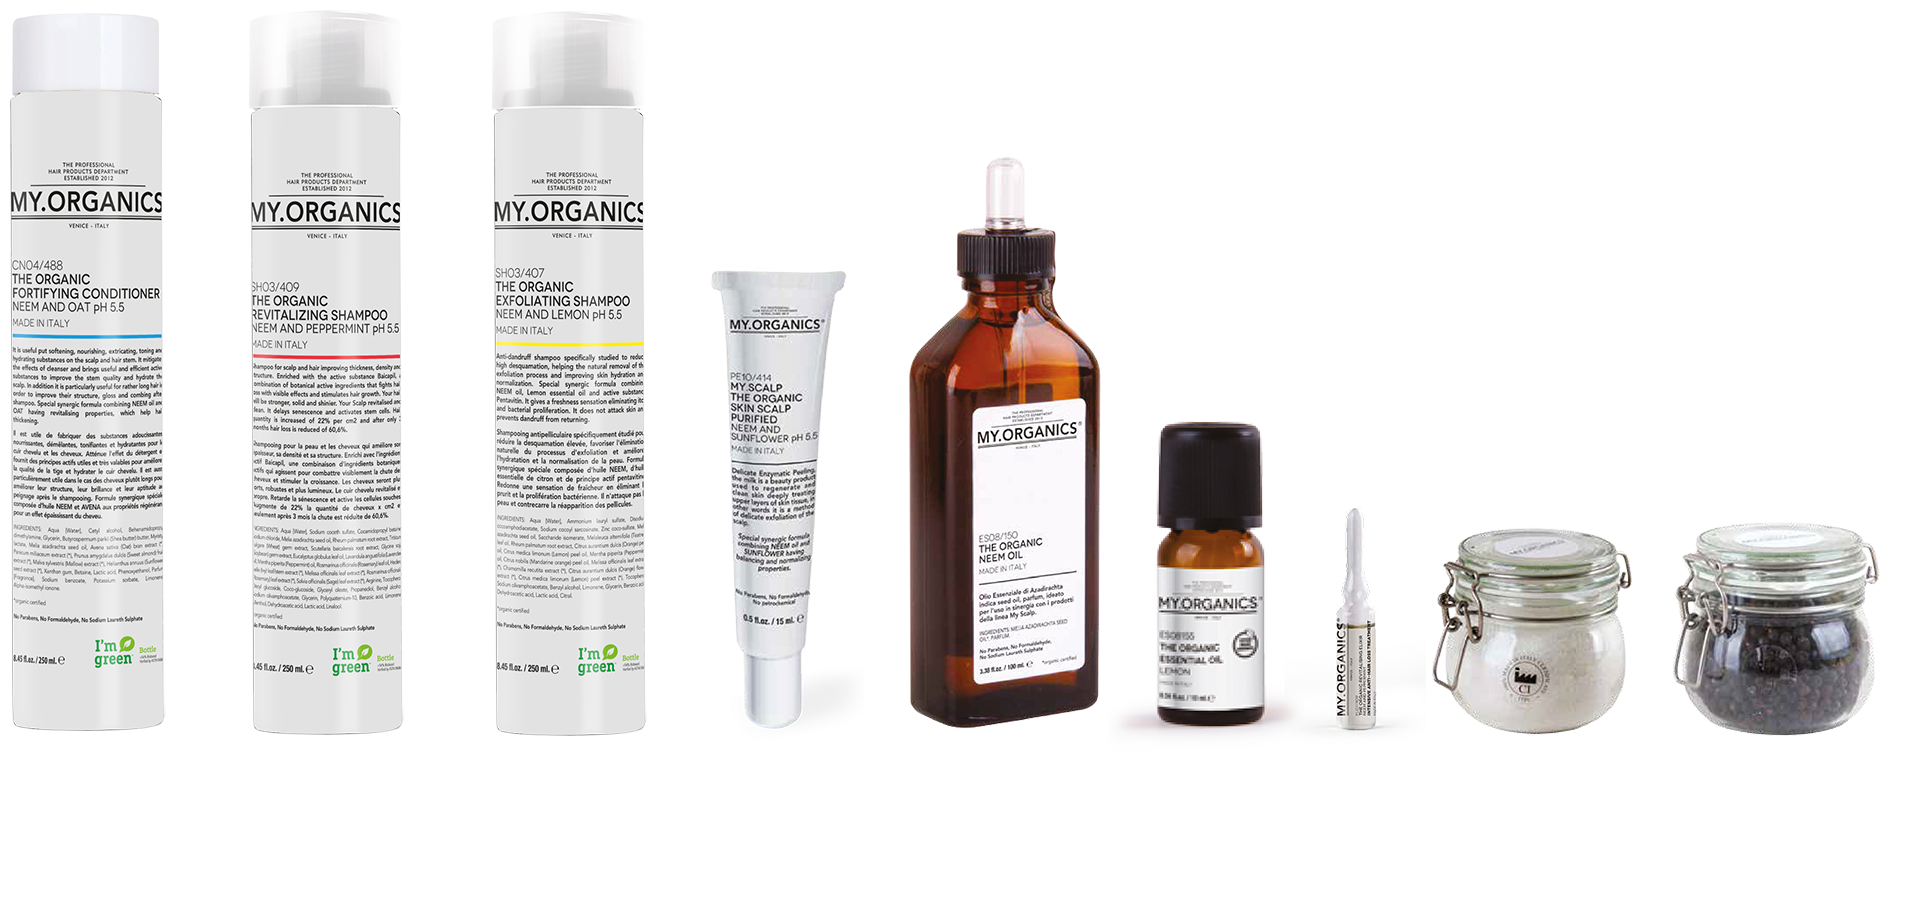 My.Scalp Line: products for hair, nails and skin - My.Organics